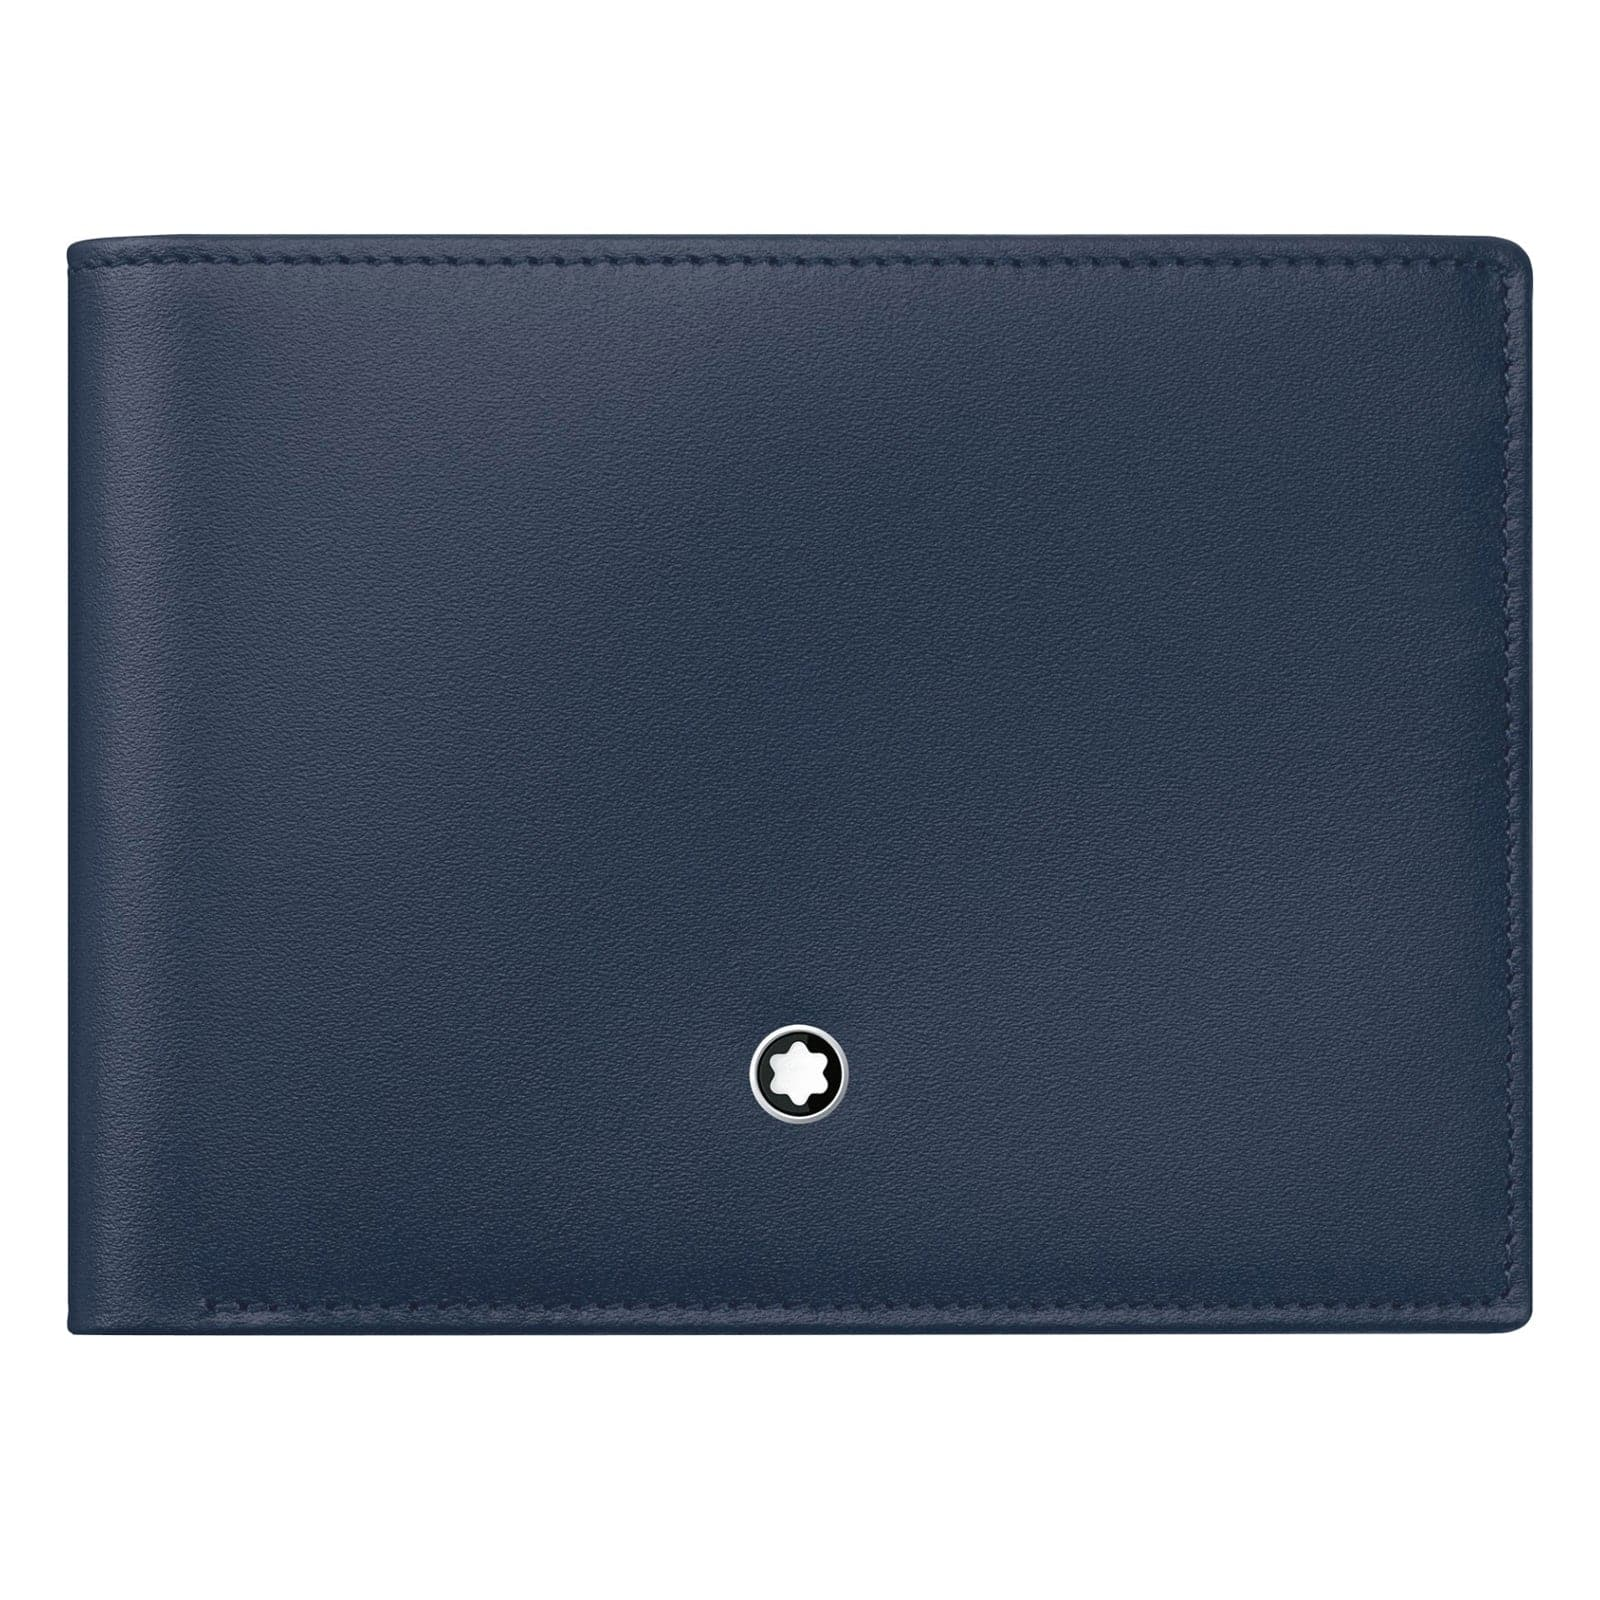 Mont Blanc Meisterstuck Blue Leather Wallet